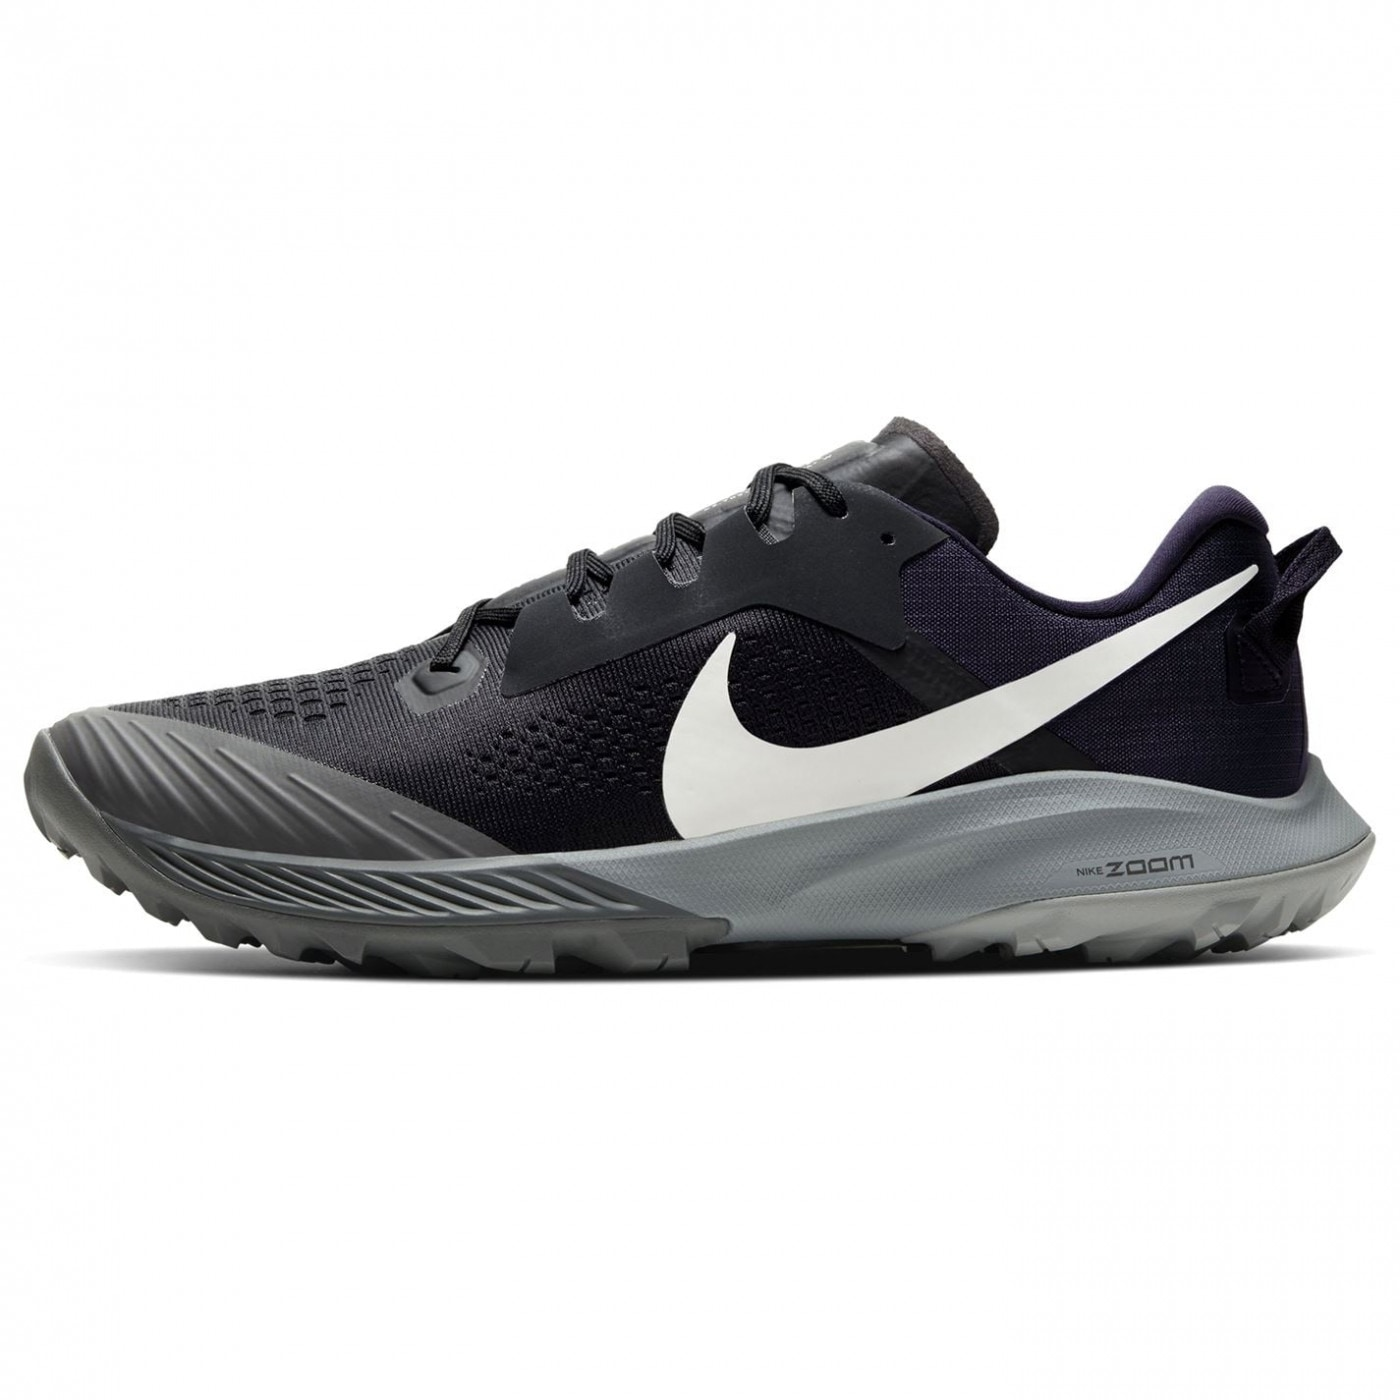 Nike Air Zoom Terra Kiger 6 Men's Trainers